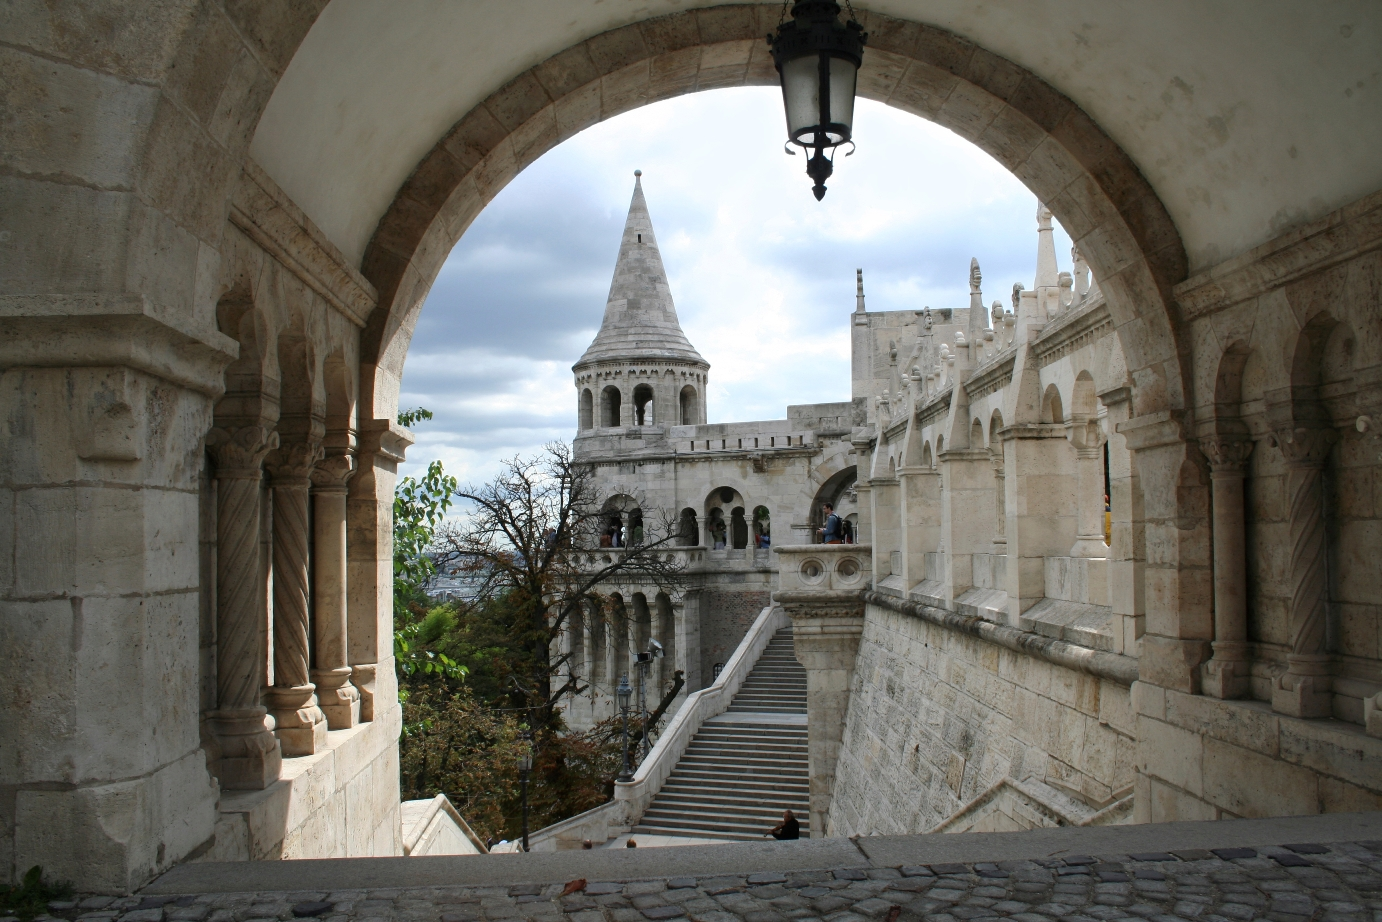 hungary_budapest_fishermans_bastion_istock_000002495672large.jpg